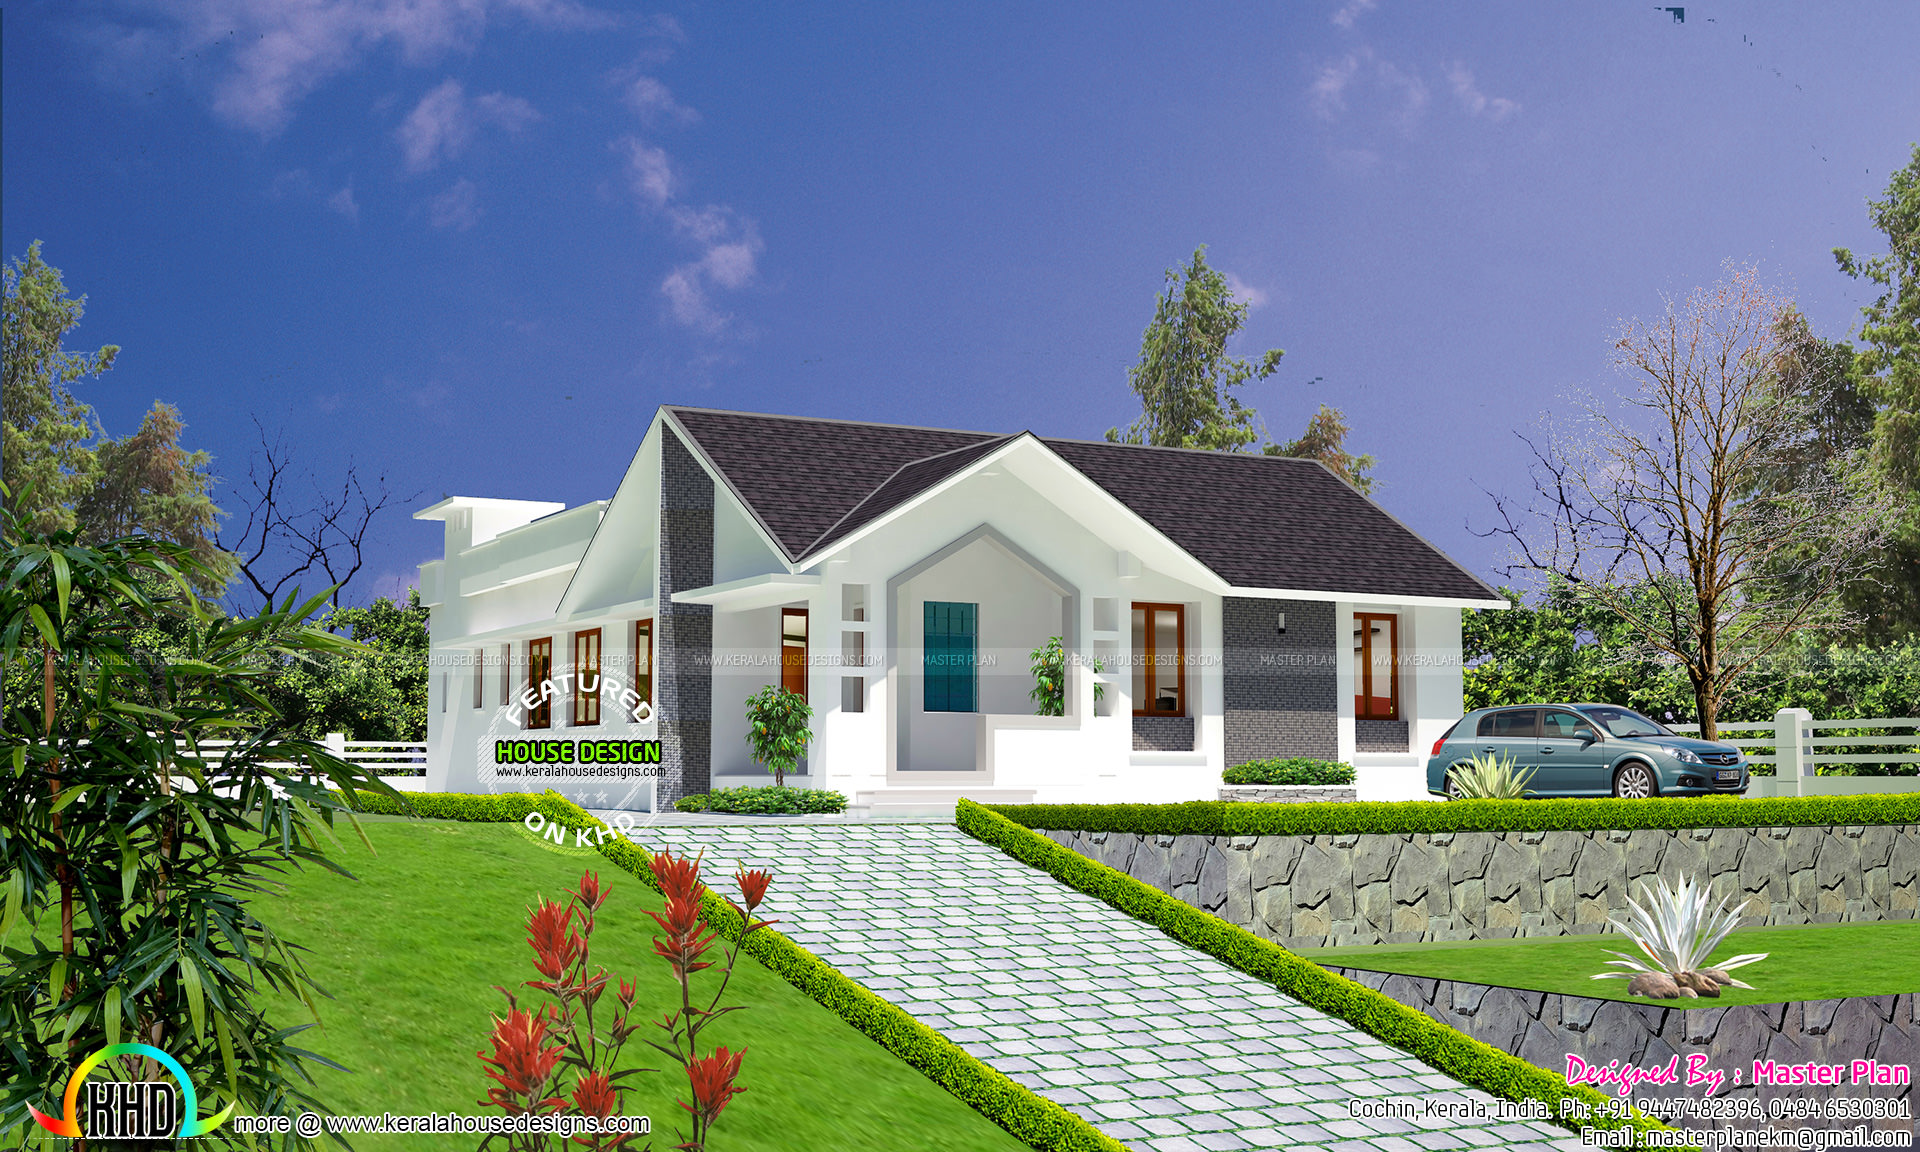 Very cute habitation Hill Station trouble solid  Kerala habitation pattern together with flooring plans